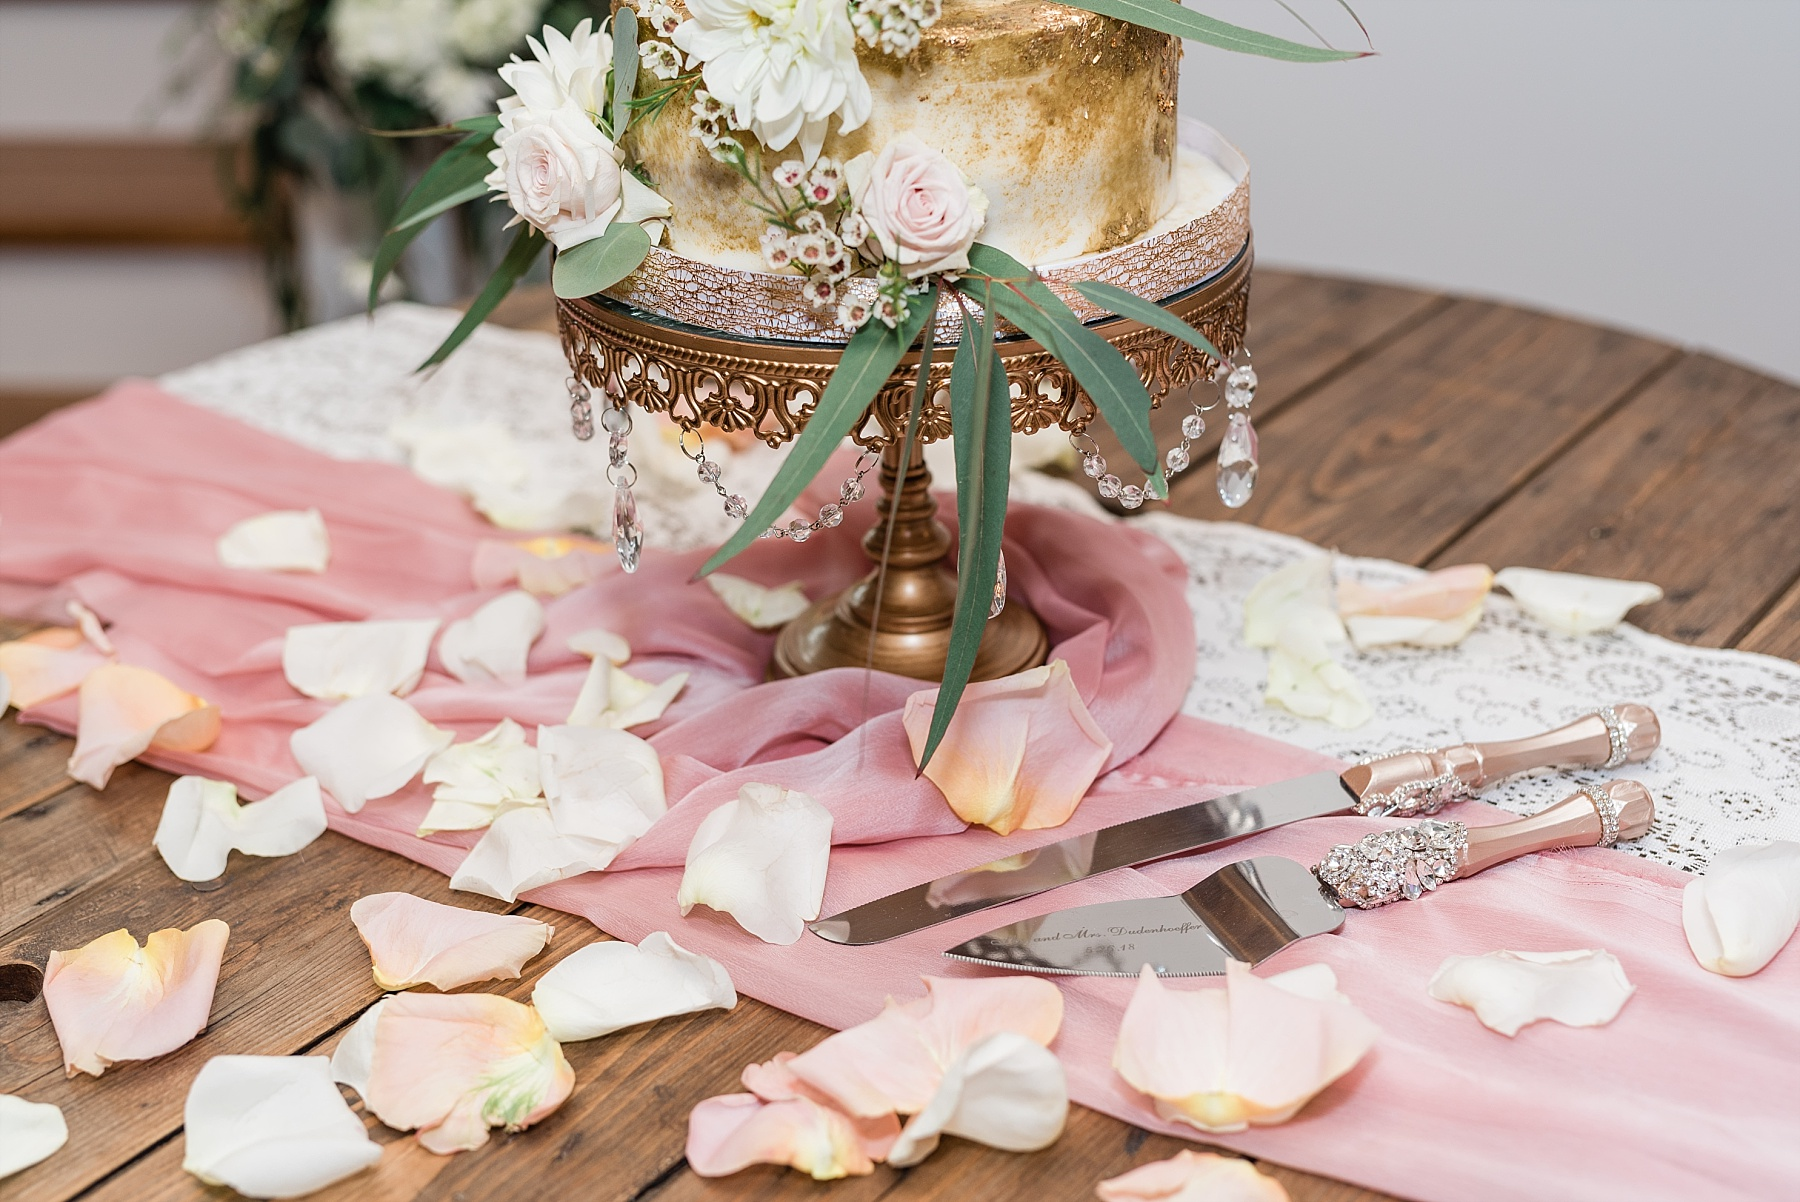 Stunning Heartfelt, Elegant, Fine Art, Chic, Outdoor Spring Wedding with Blush, Cream, Greenery, Rose Gold, and Sequins at Emerson Fields Venue by Kelsi Kliethermes Photography_0062.jpg